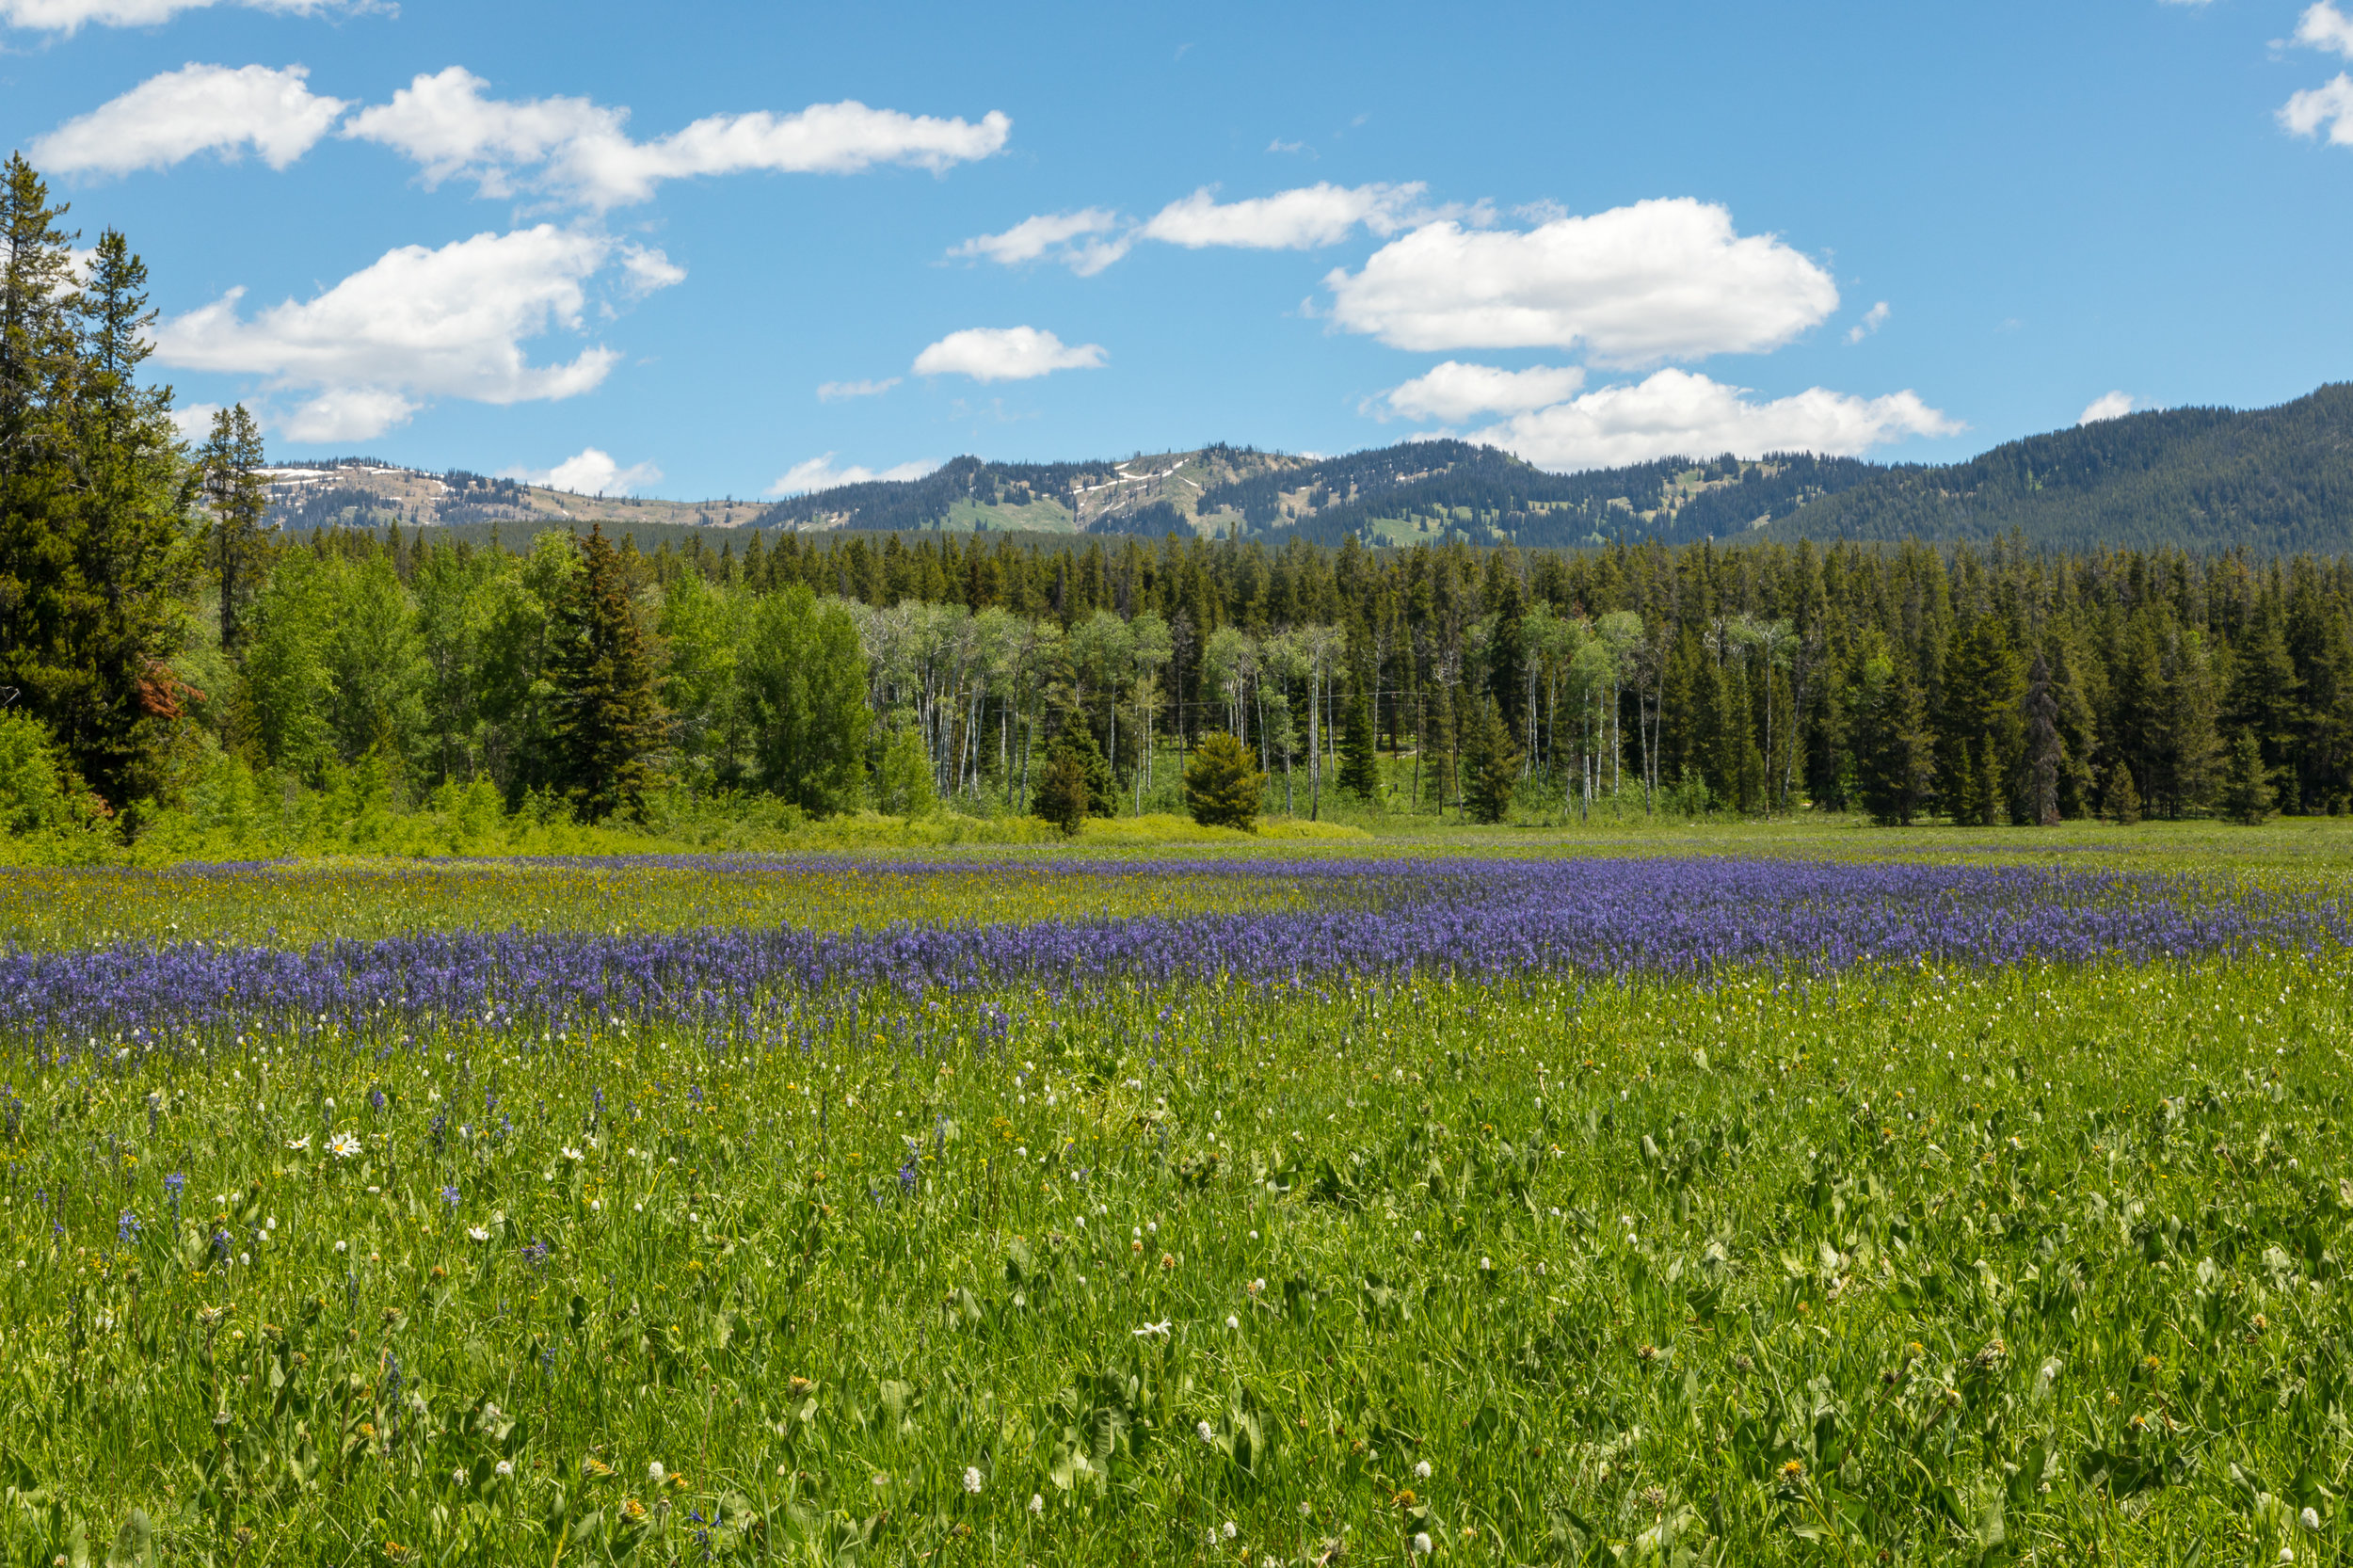 Wildflower Field in Grand Teton National Park, Image # 7856